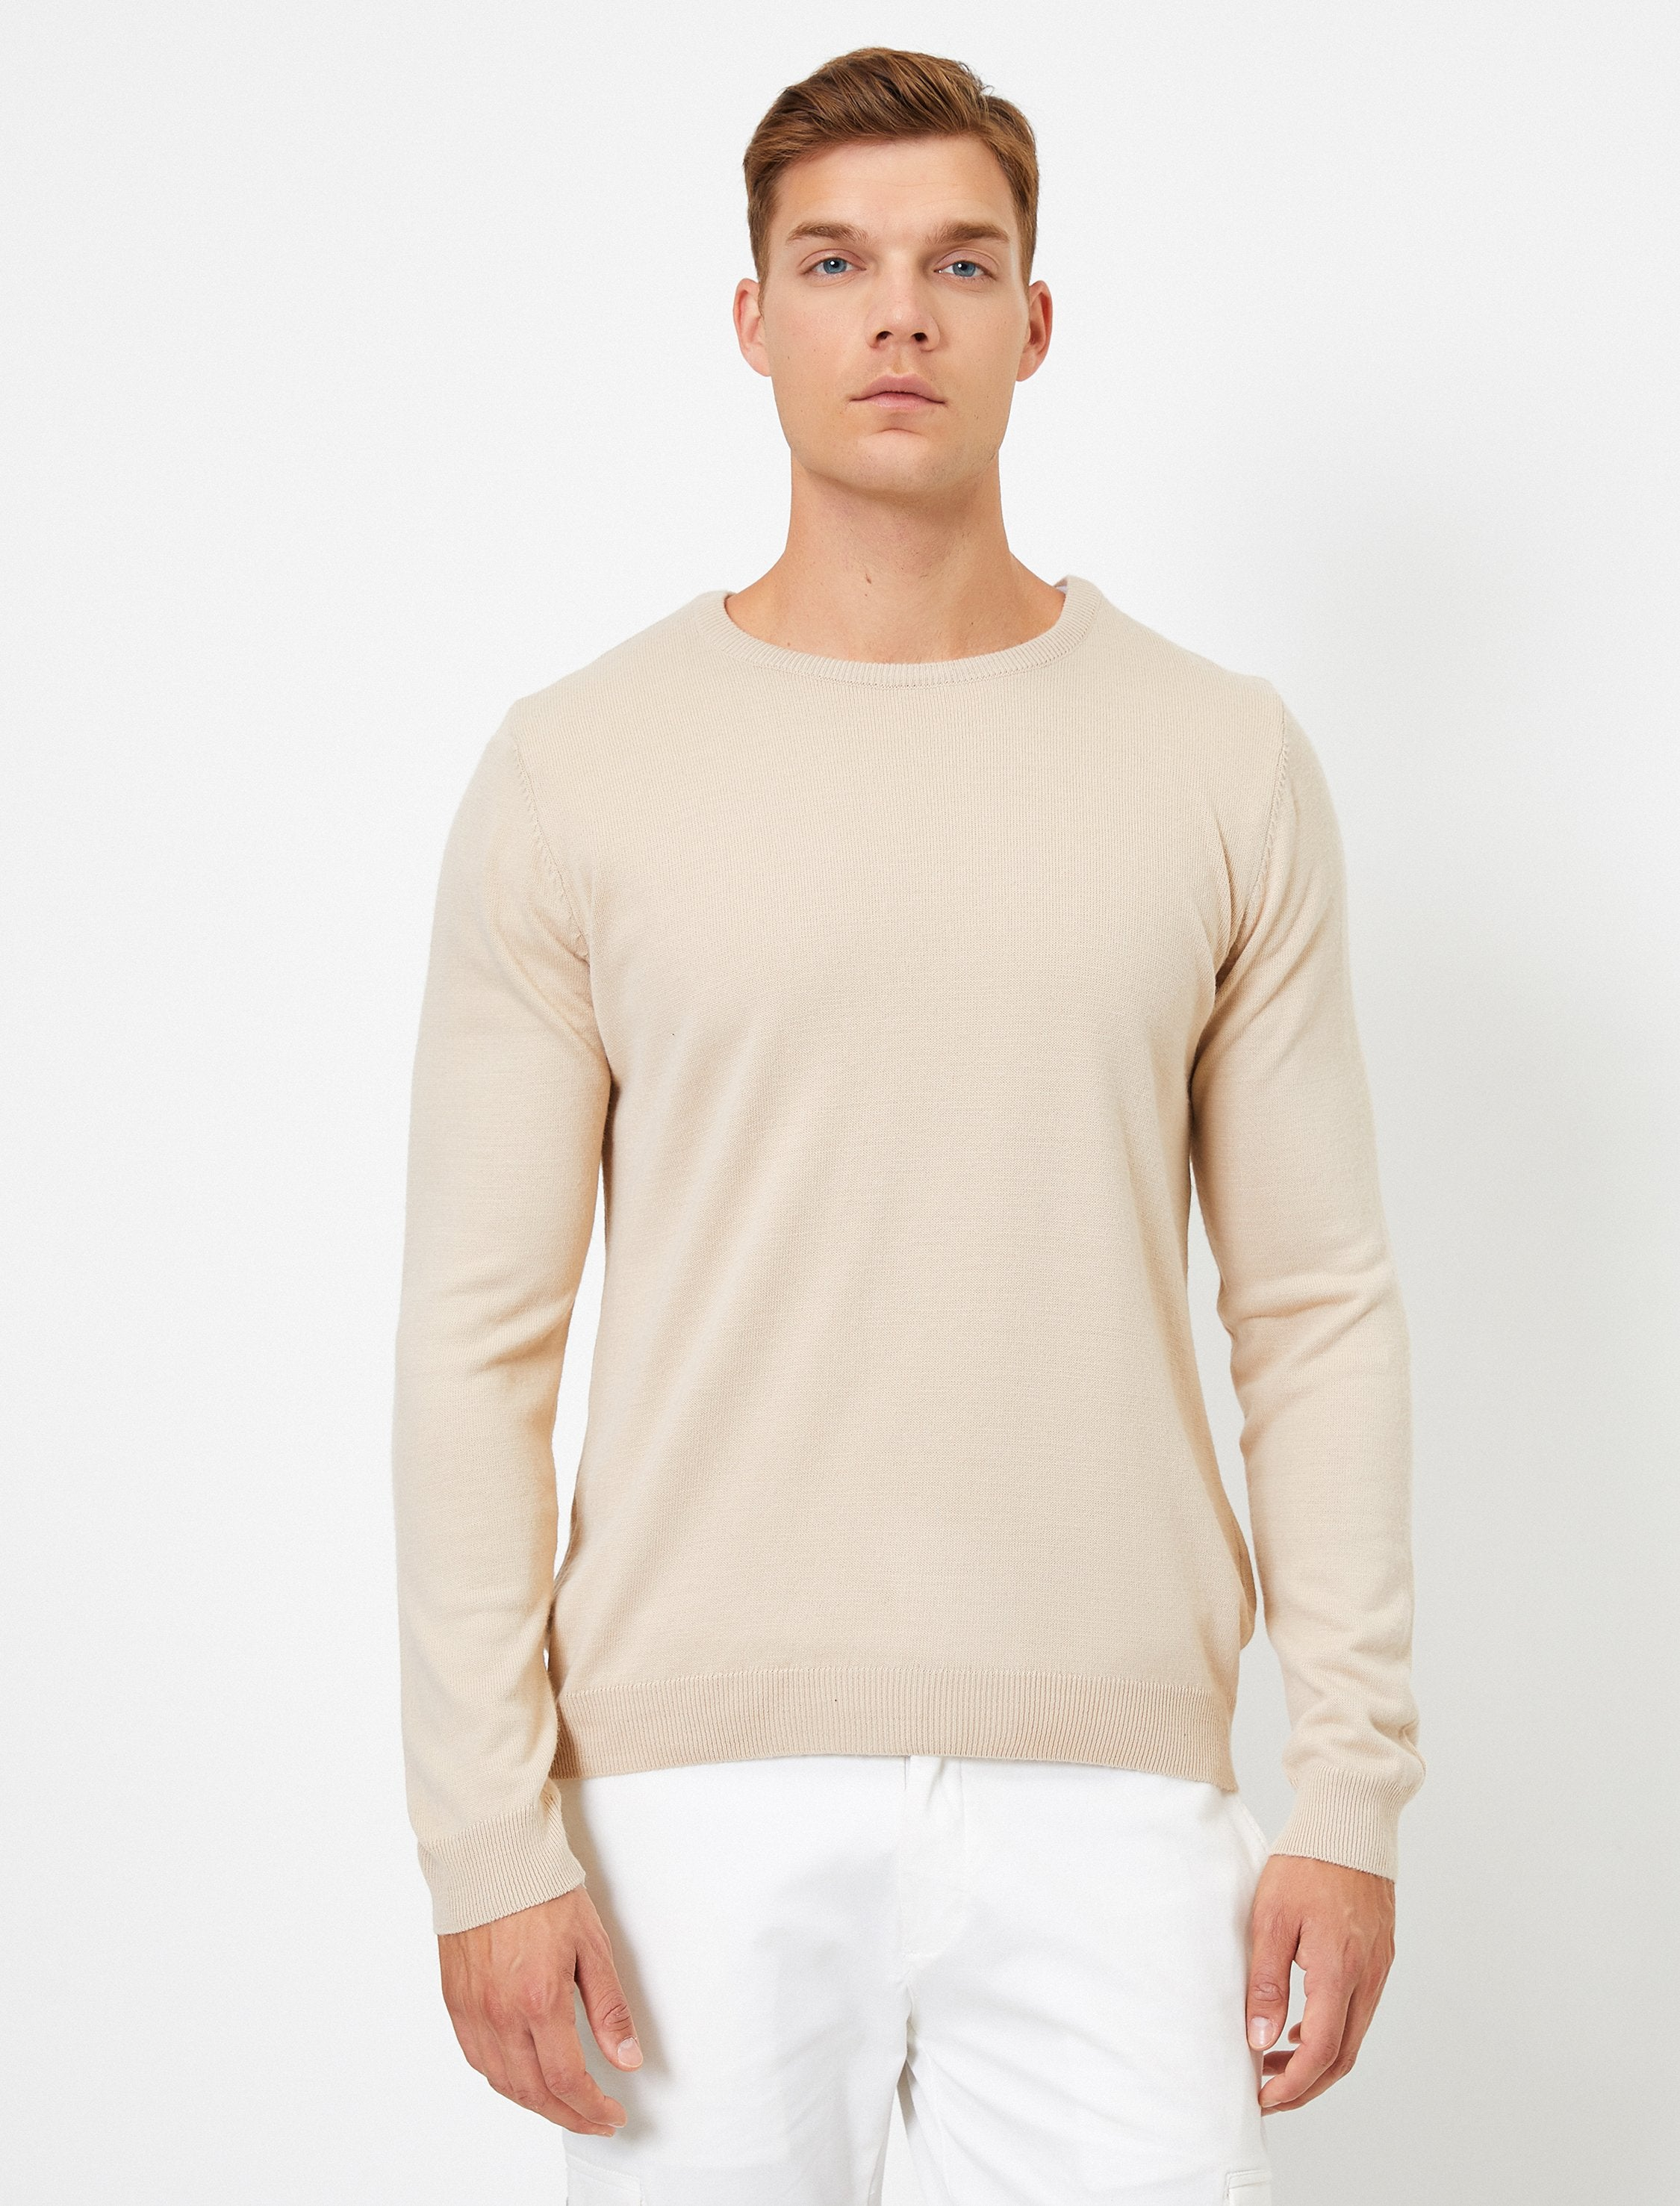 Basic V Neck Sweater in Cream